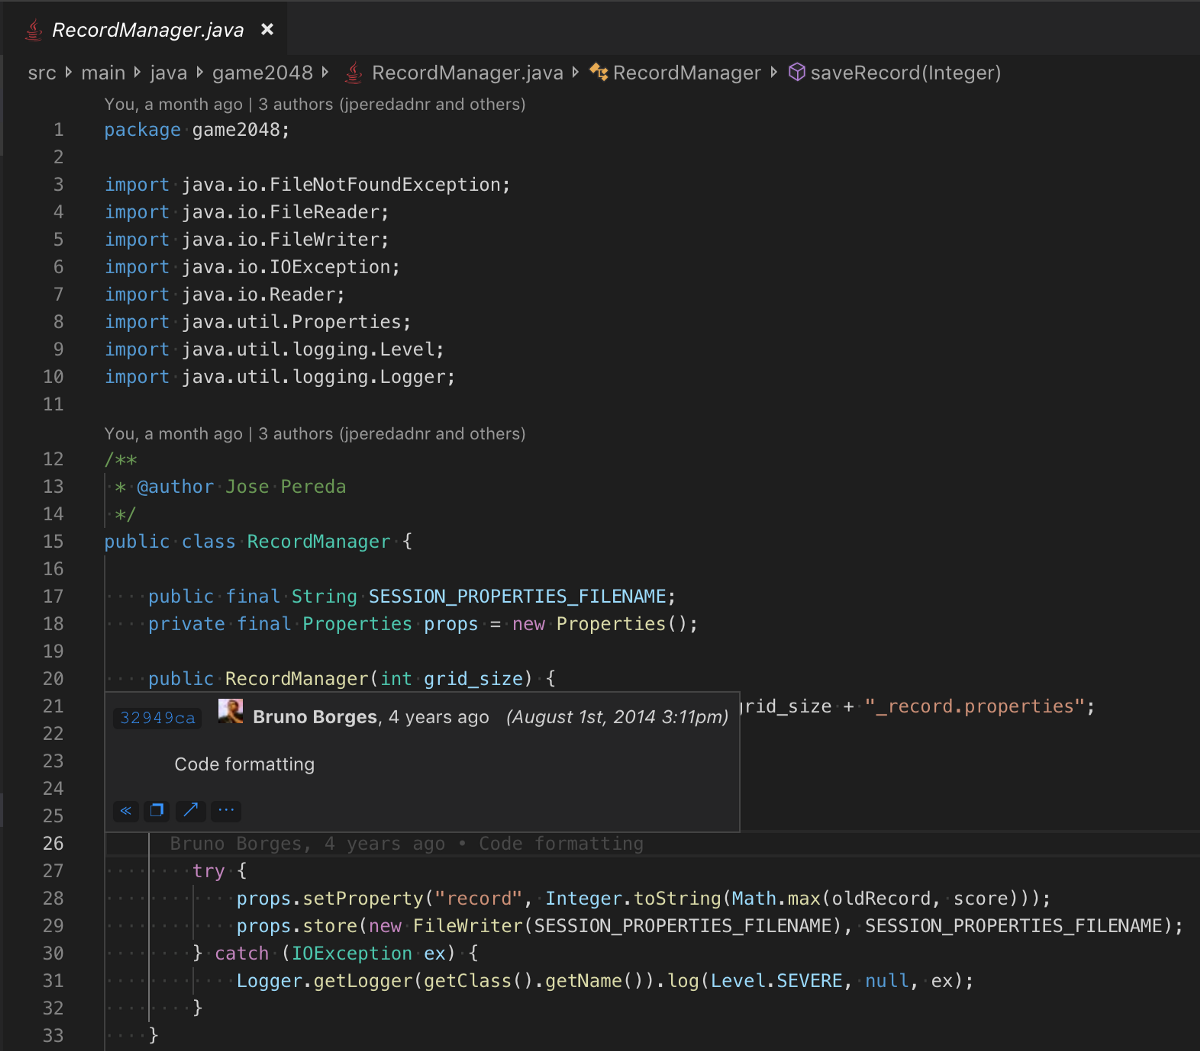 Visual Studio Code for Java: The Ultimate Guide 2019 - DZone